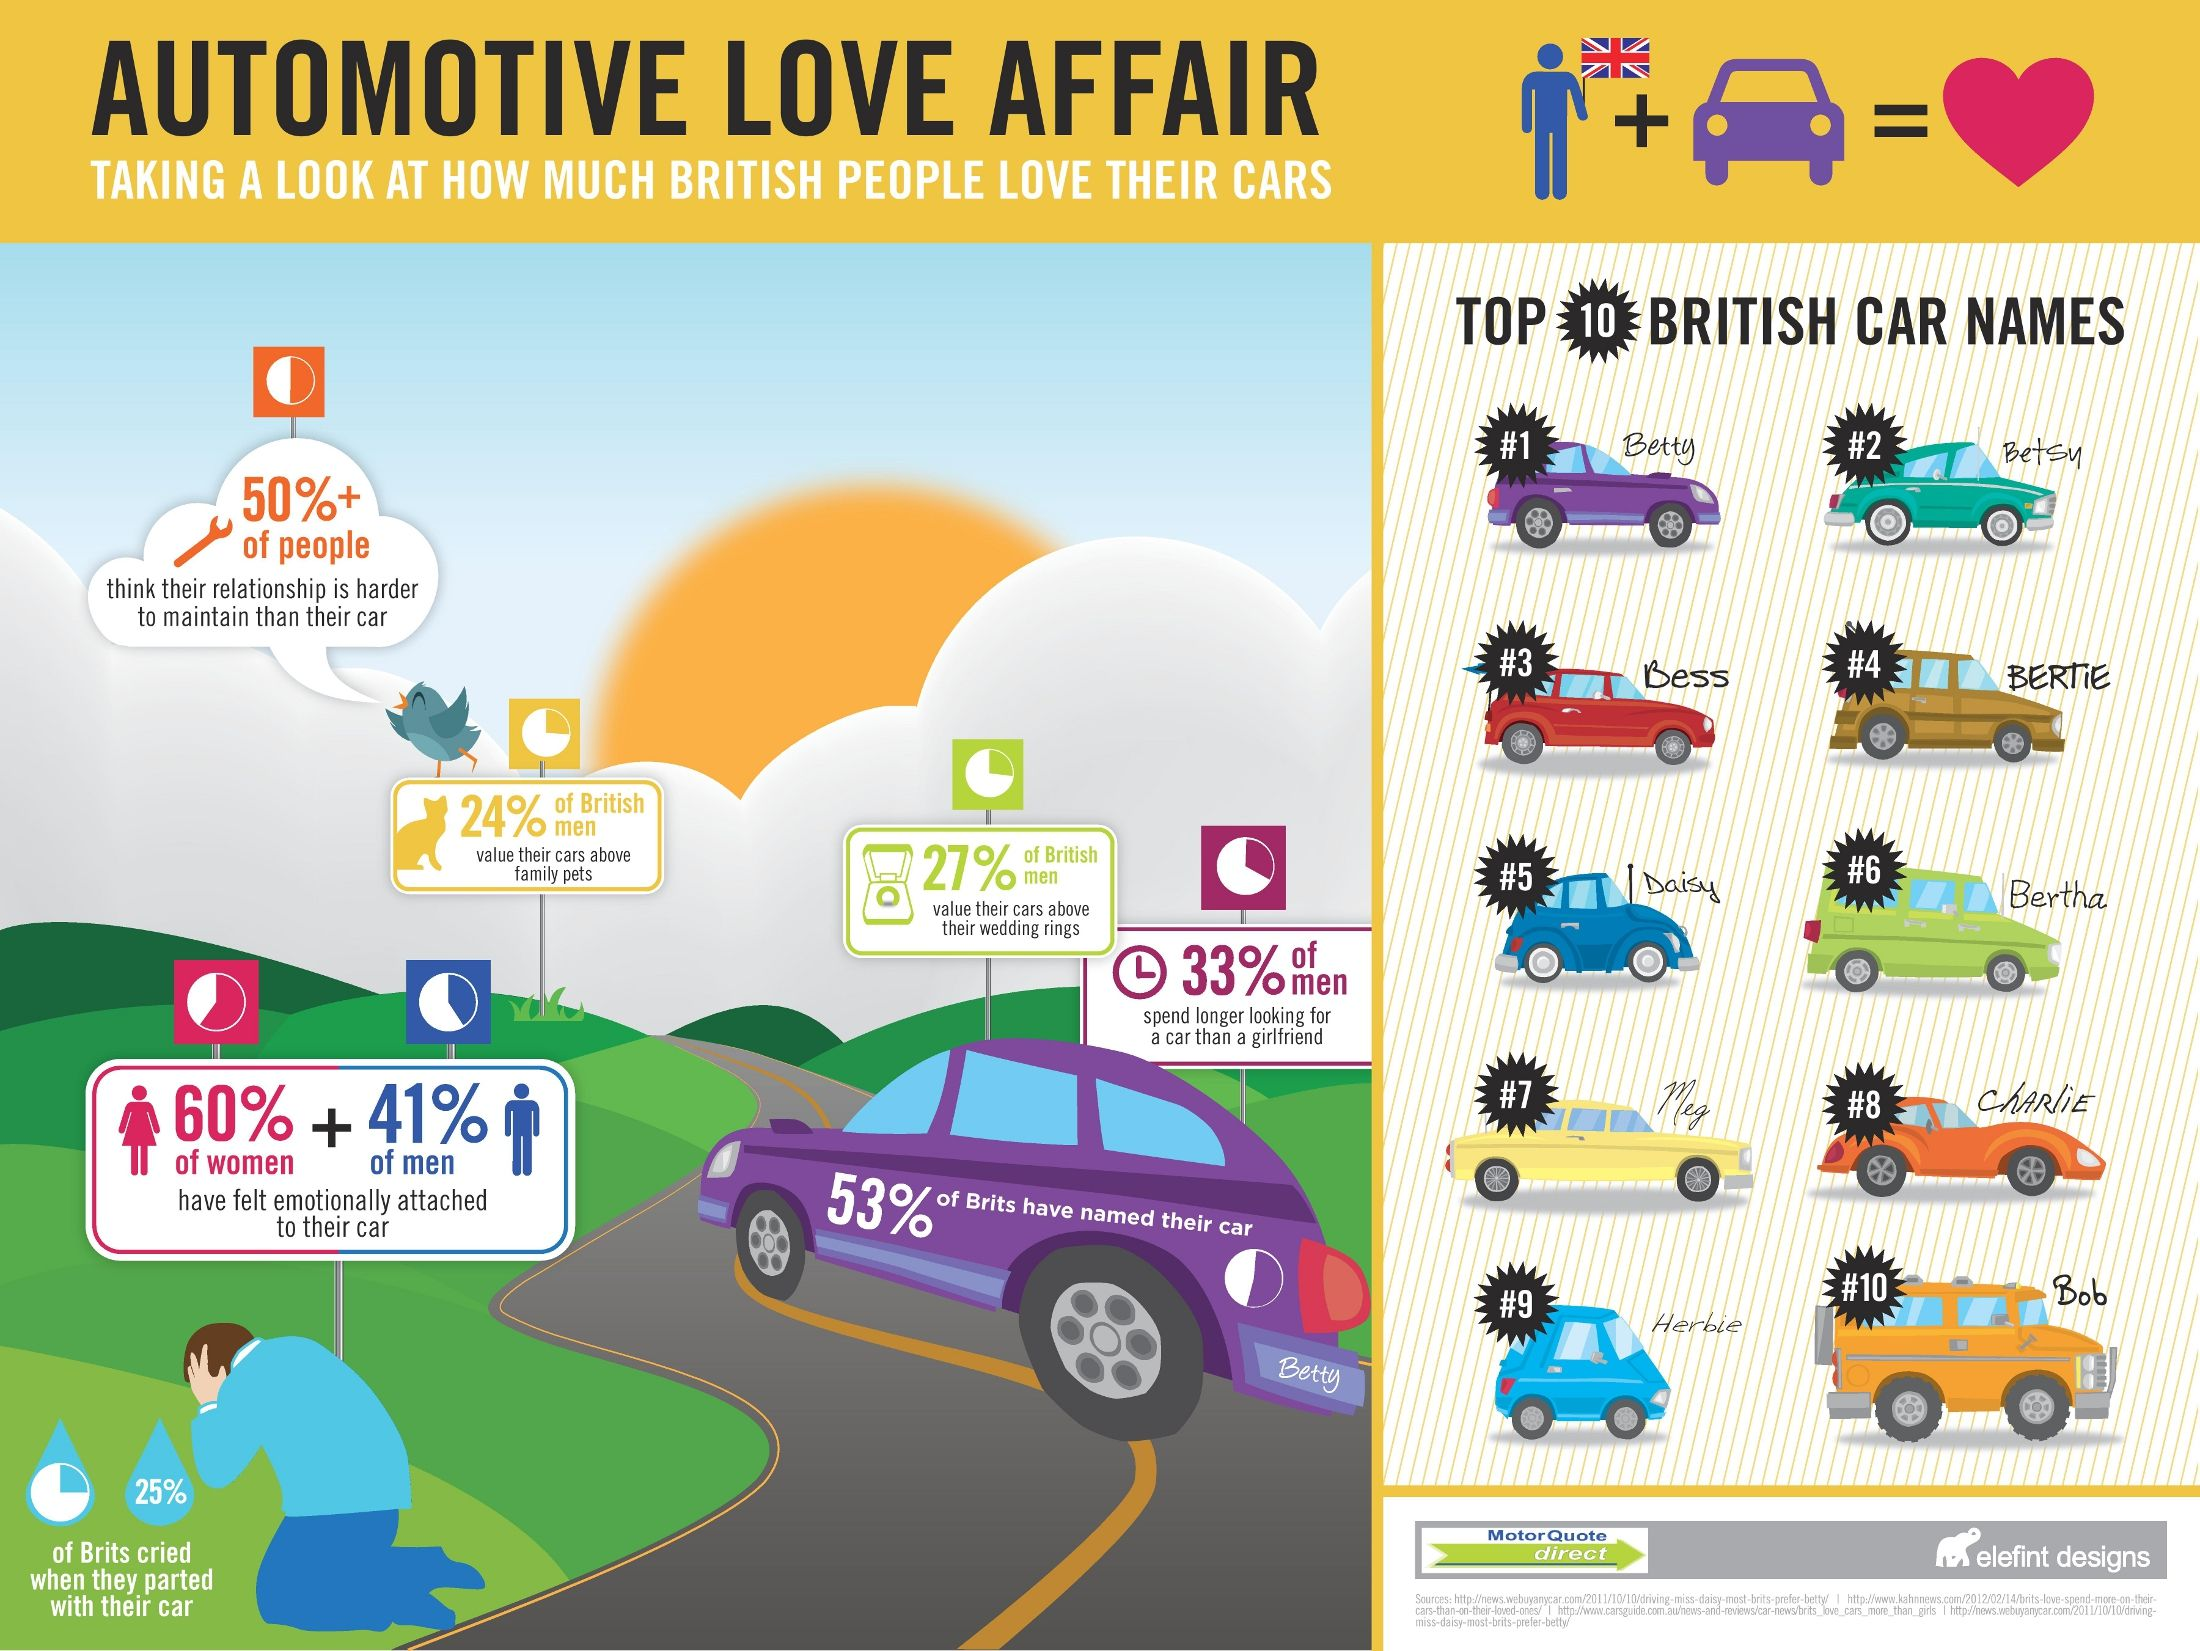 Automotive Love Affair Used Cars Movie Car Insurance Love Affair